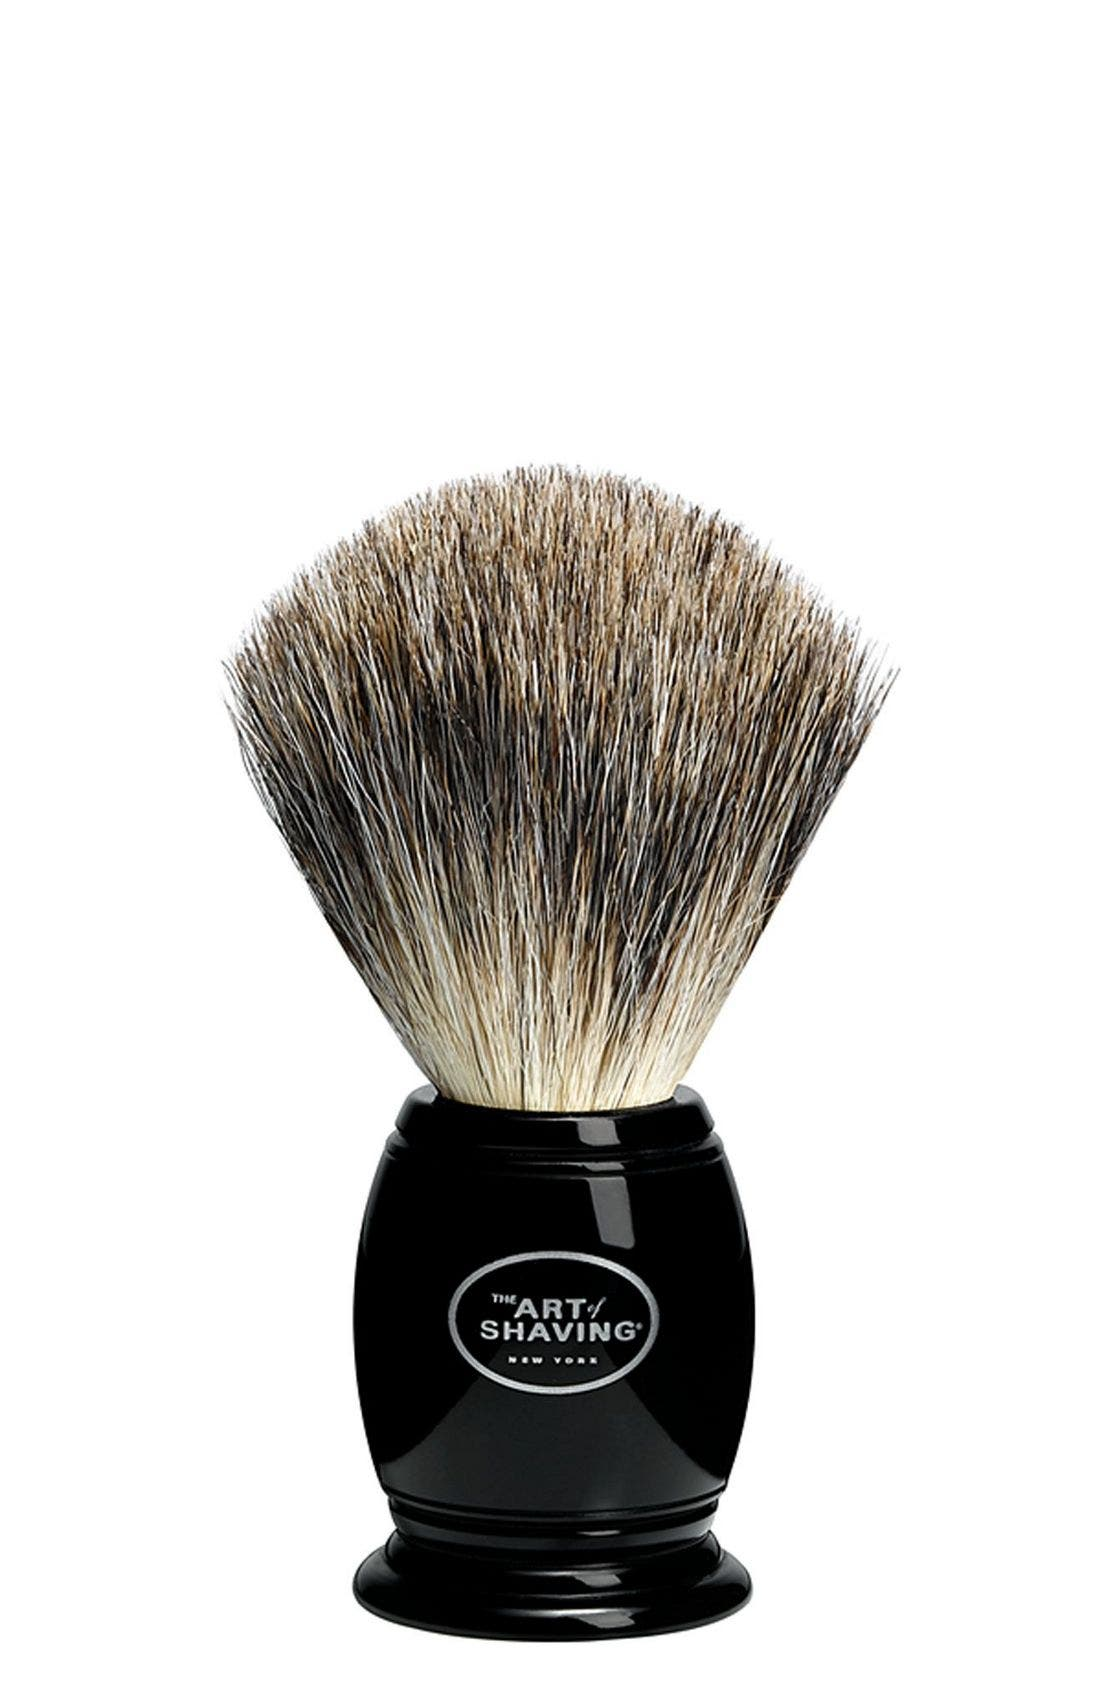 The Art of Shaving® Pure Badger Shaving Brush